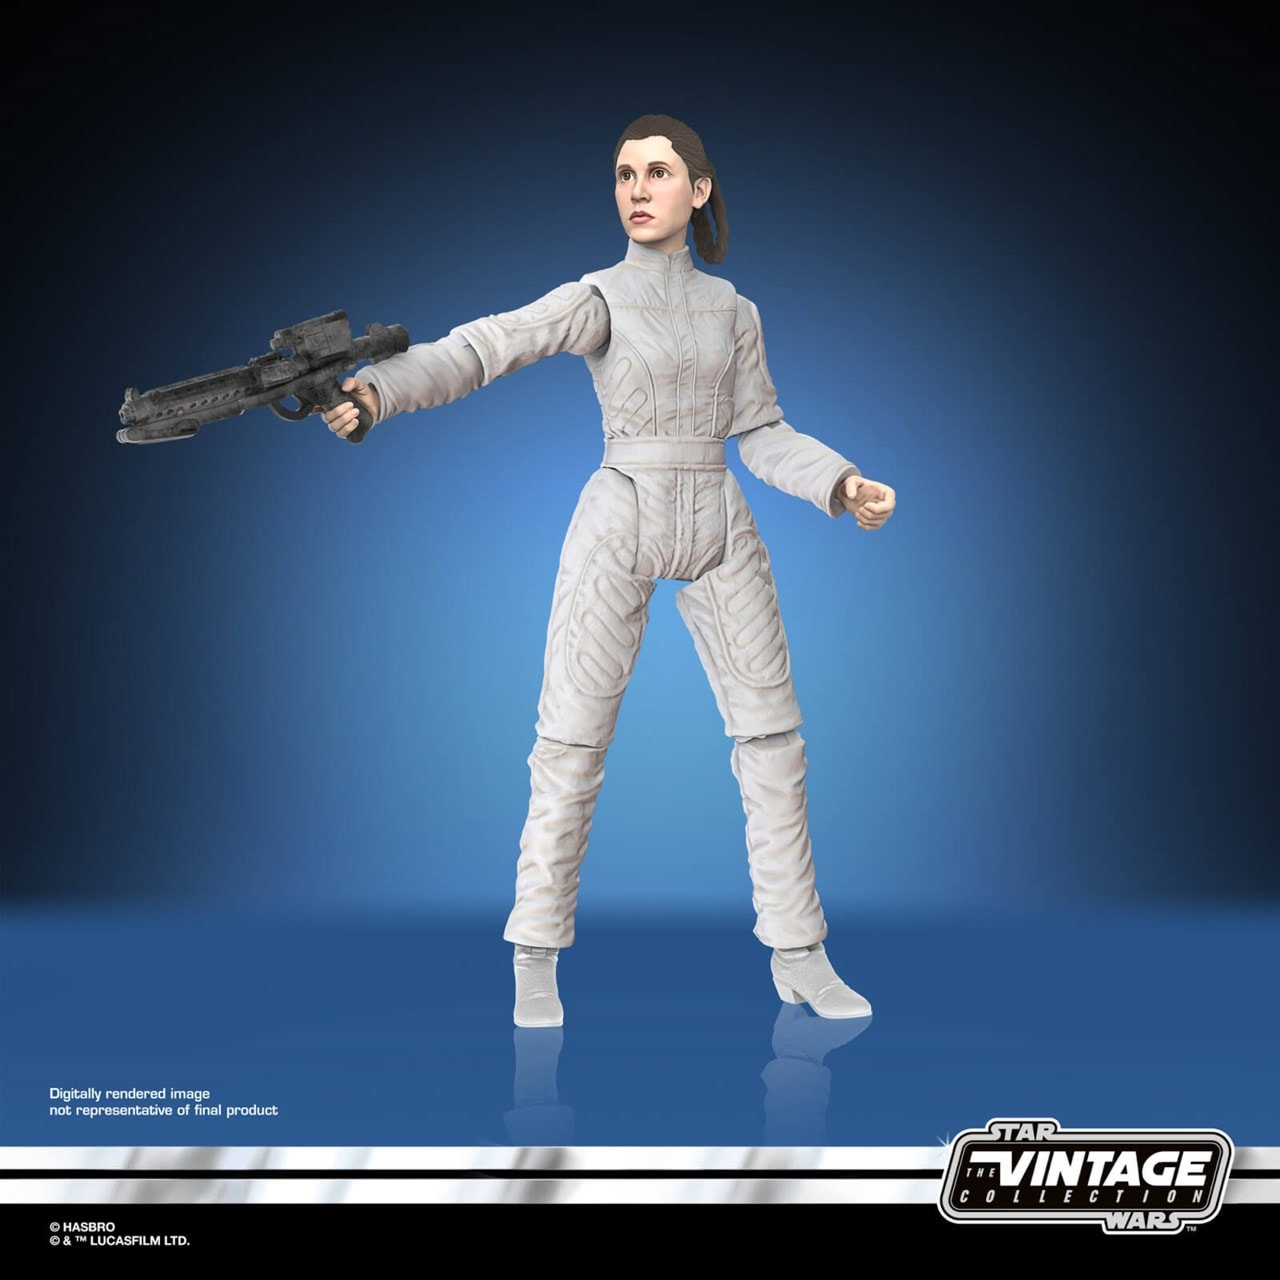 Star Wars Vintage Collection Princess Leia Bespin Escape Action Figure - 2